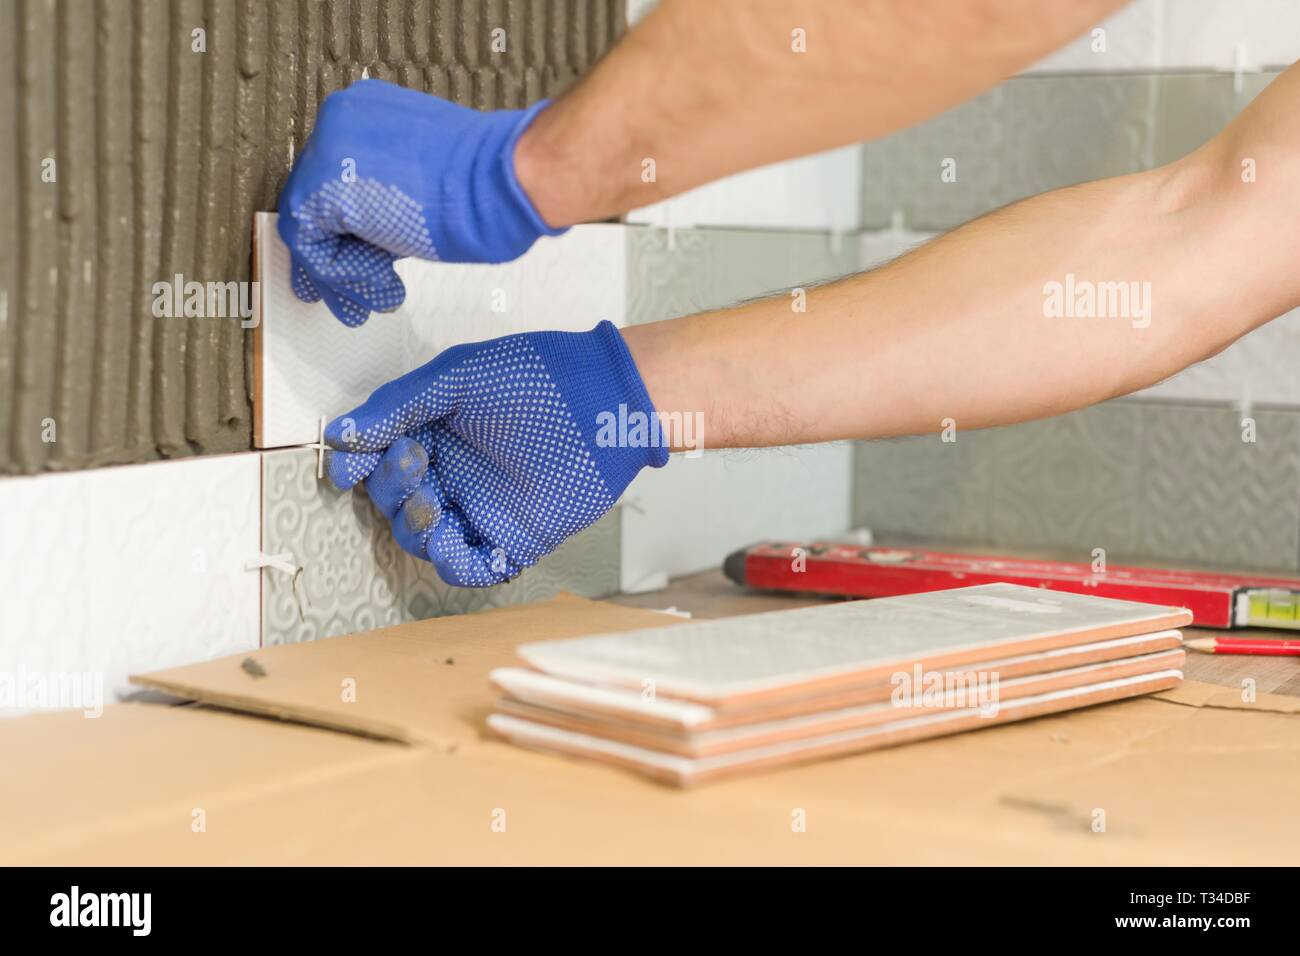 Installing ceramic tiles on the wall in kitchen. Placing tile spacers with hands, renovation, repair, construction - Stock Image